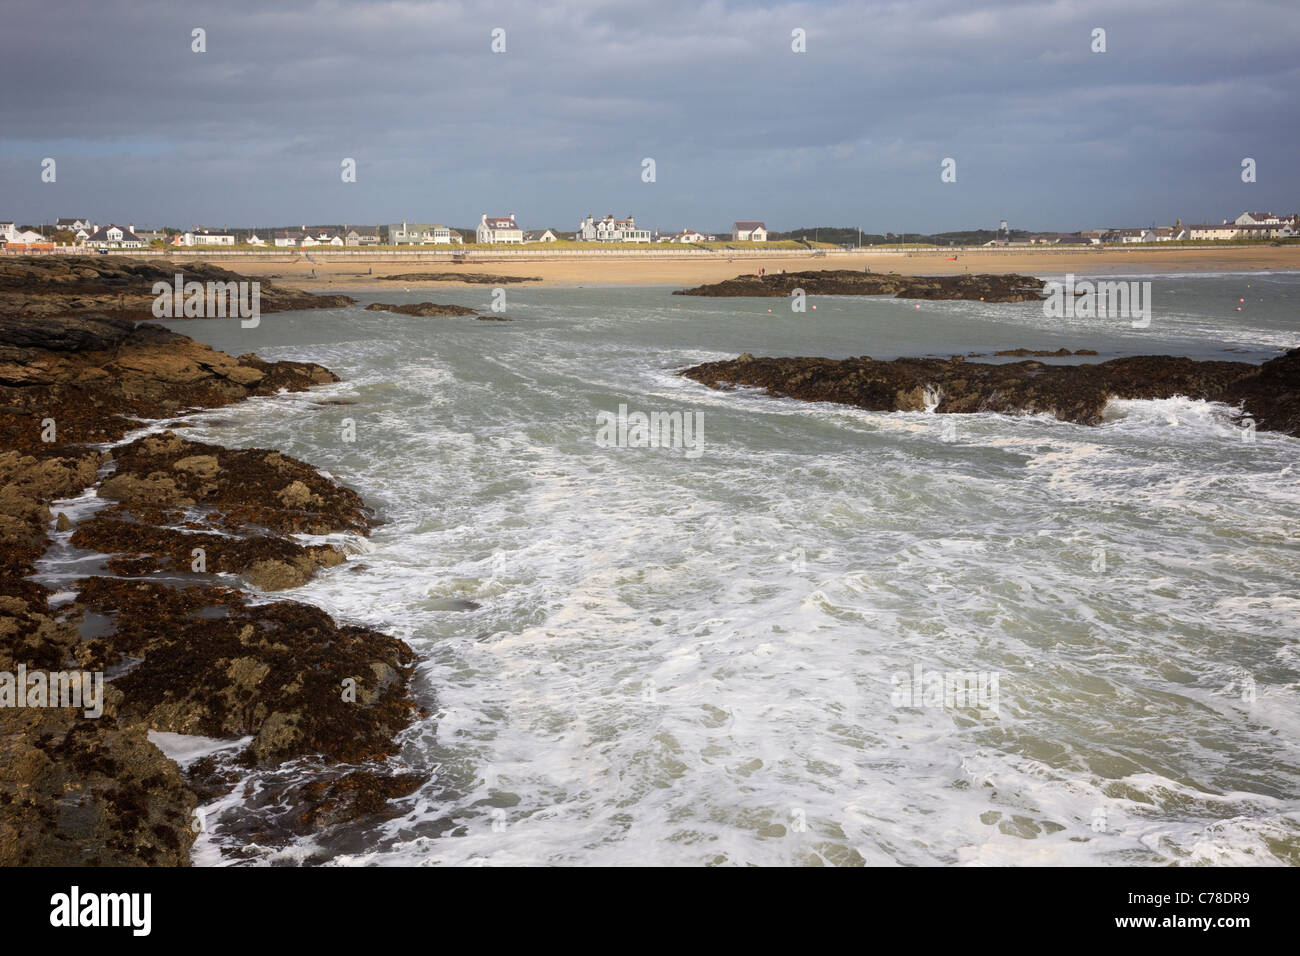 Trearddur Bay, Anglesey, North Wales, UK. View to seafront and beach across the water from rocks - Stock Image